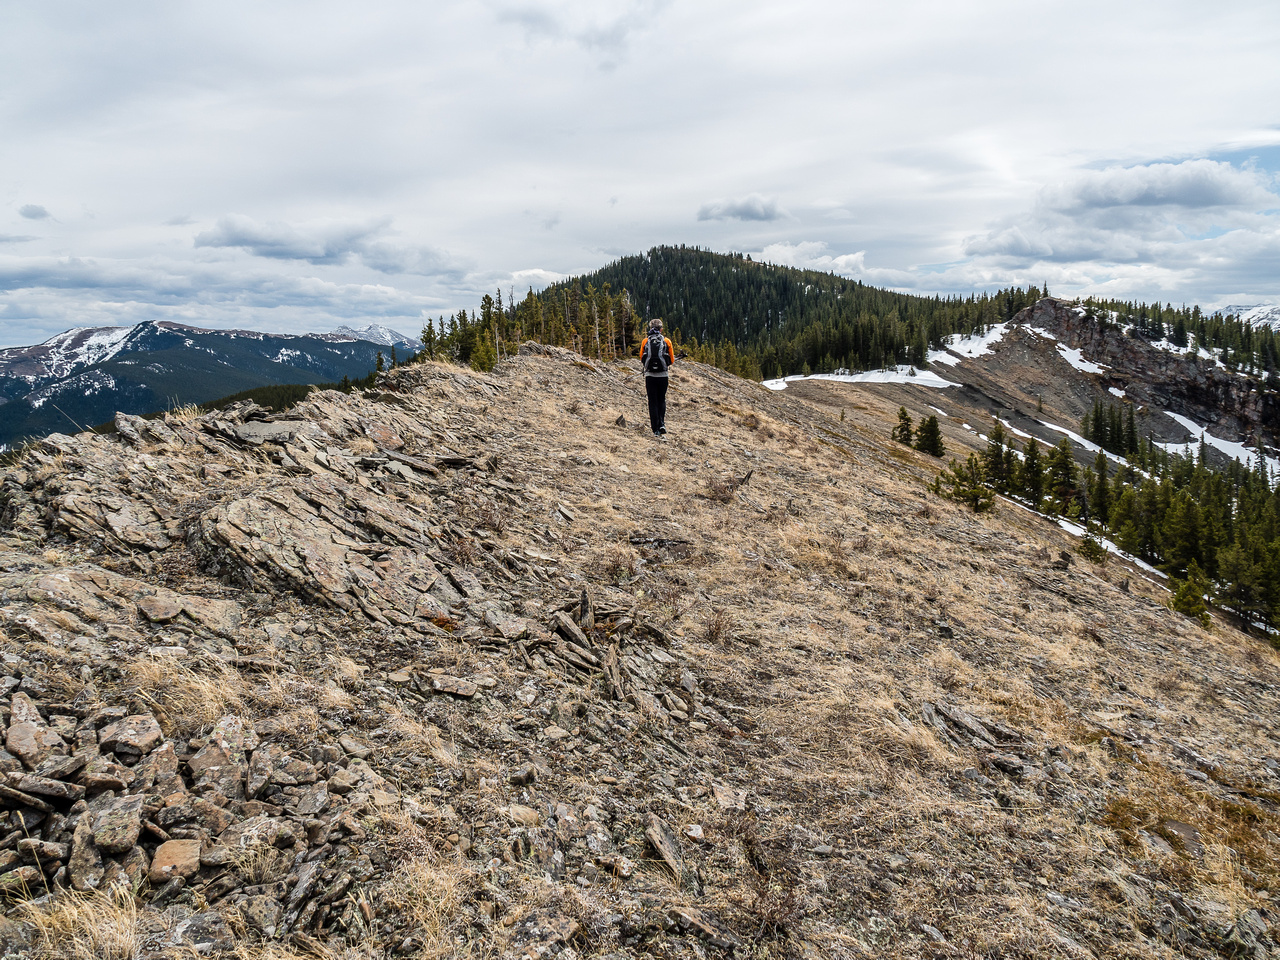 My favorite part of the entire day was this open ridge traverse towards South Lusk in warm sunshine with great views.